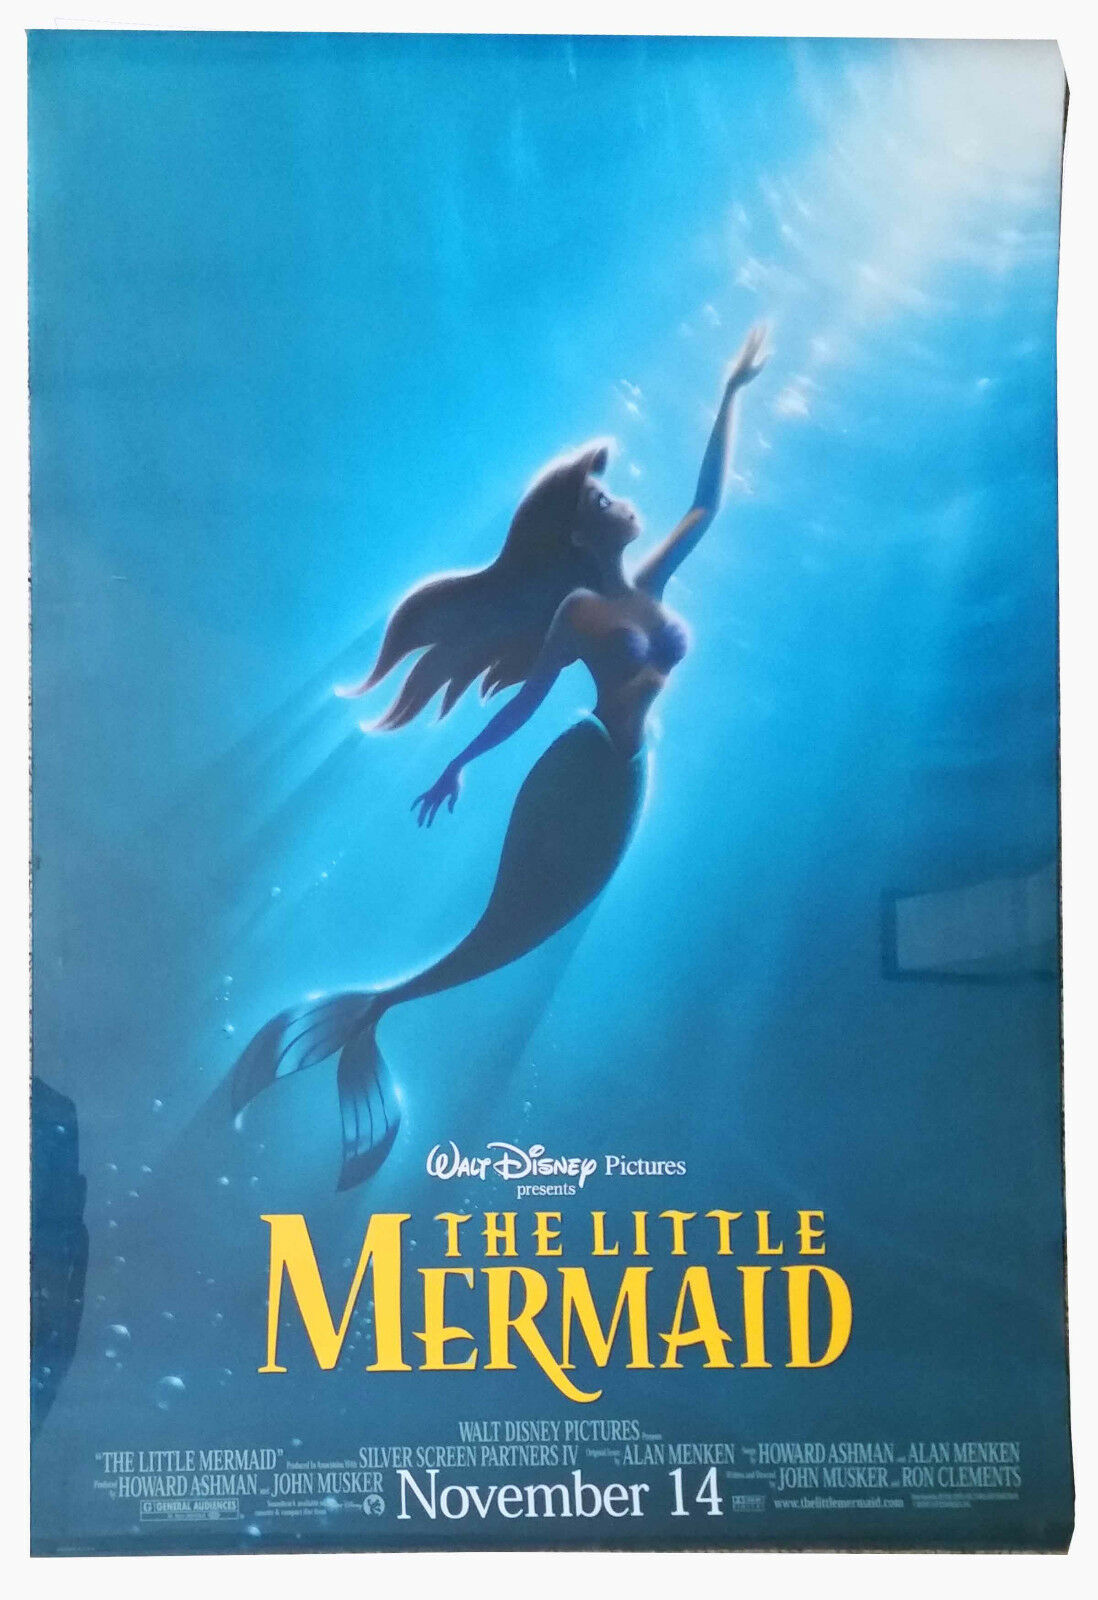 Disney's The Little Mermaid Original Teaser Poster